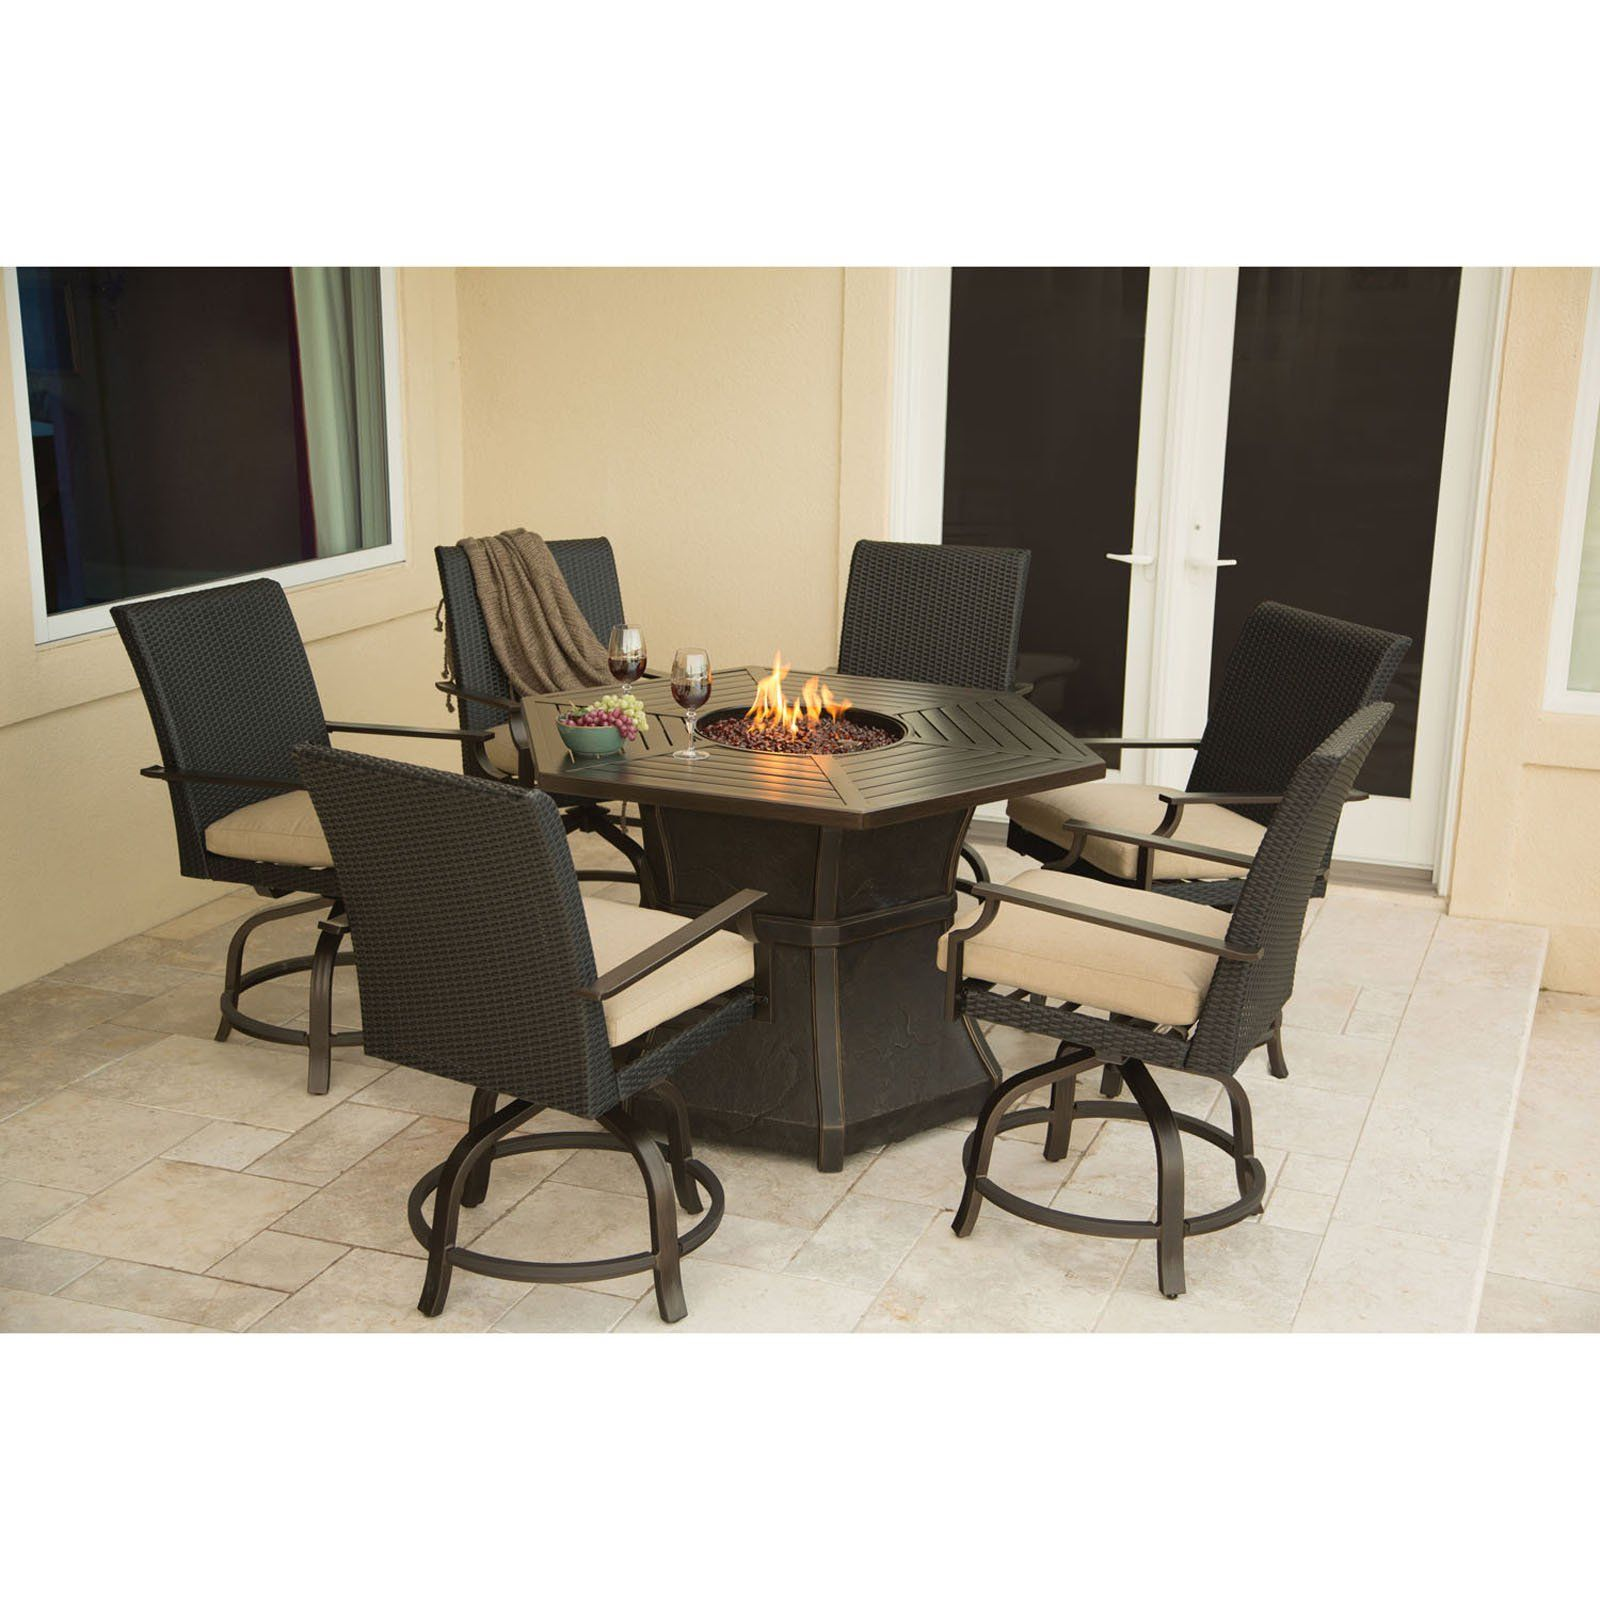 Hanover Aspen Creek Bar Height Fire Pit Dining Set | from hayneedle ...